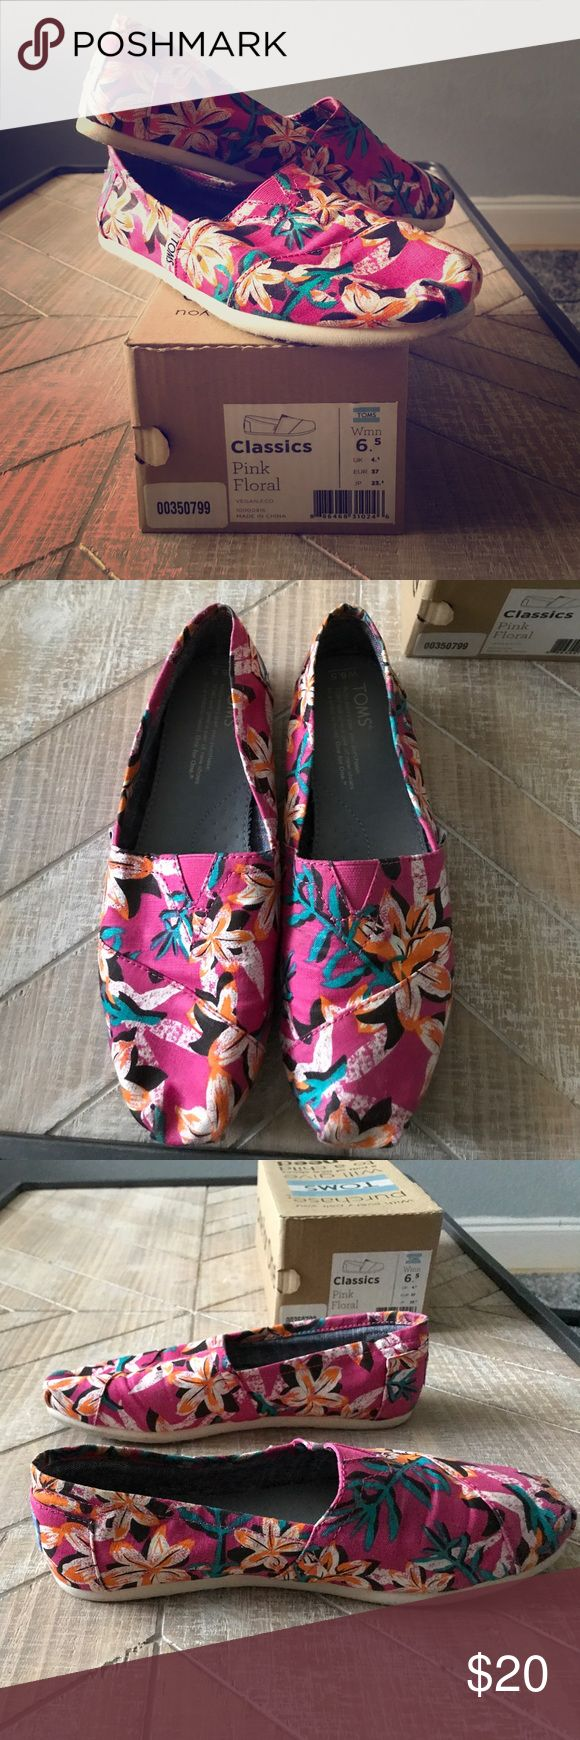 Toms Slip-ons Cute floral Toms Slip-ons. Worn a handful of times. Toms Shoes Flats & Loafers